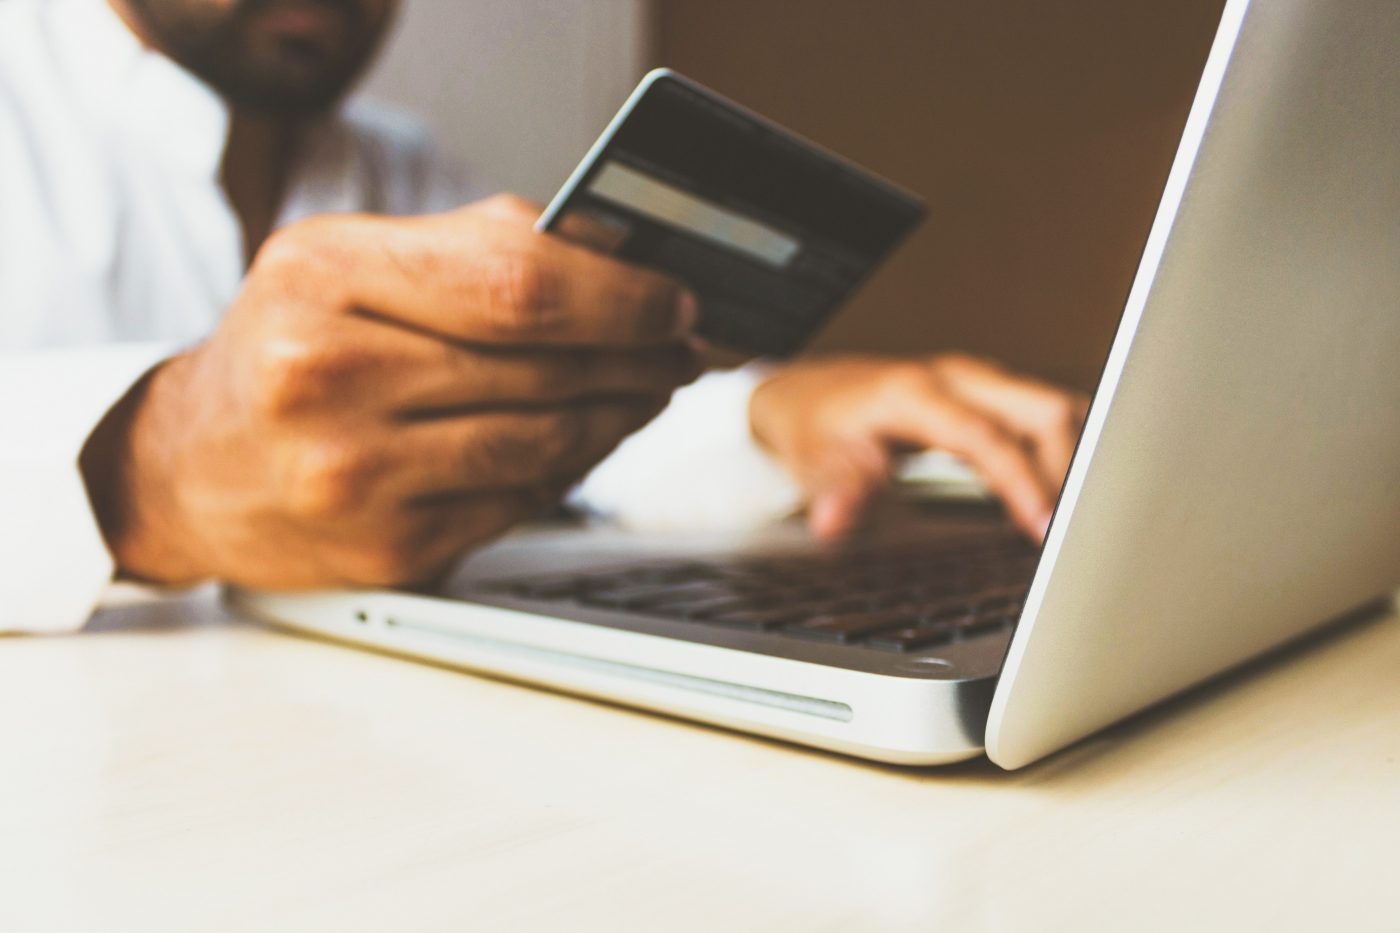 Changes to Online Payments in the EU